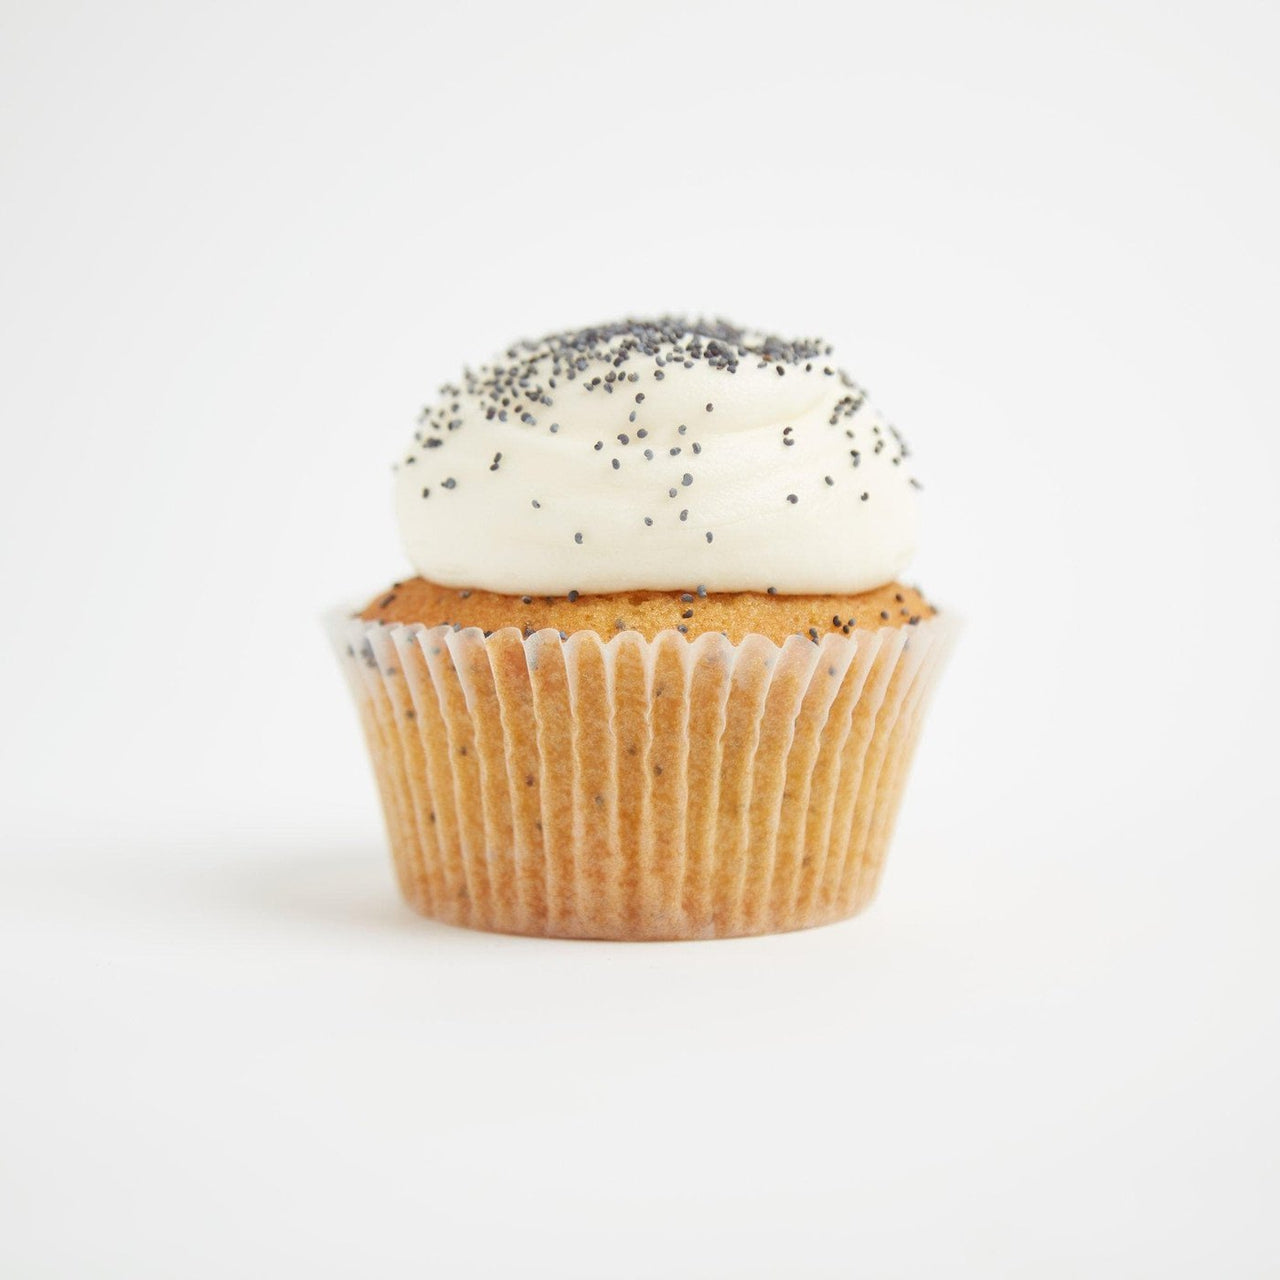 Lemon & Poppyseed Cupcakes by Crumbs & Doilies